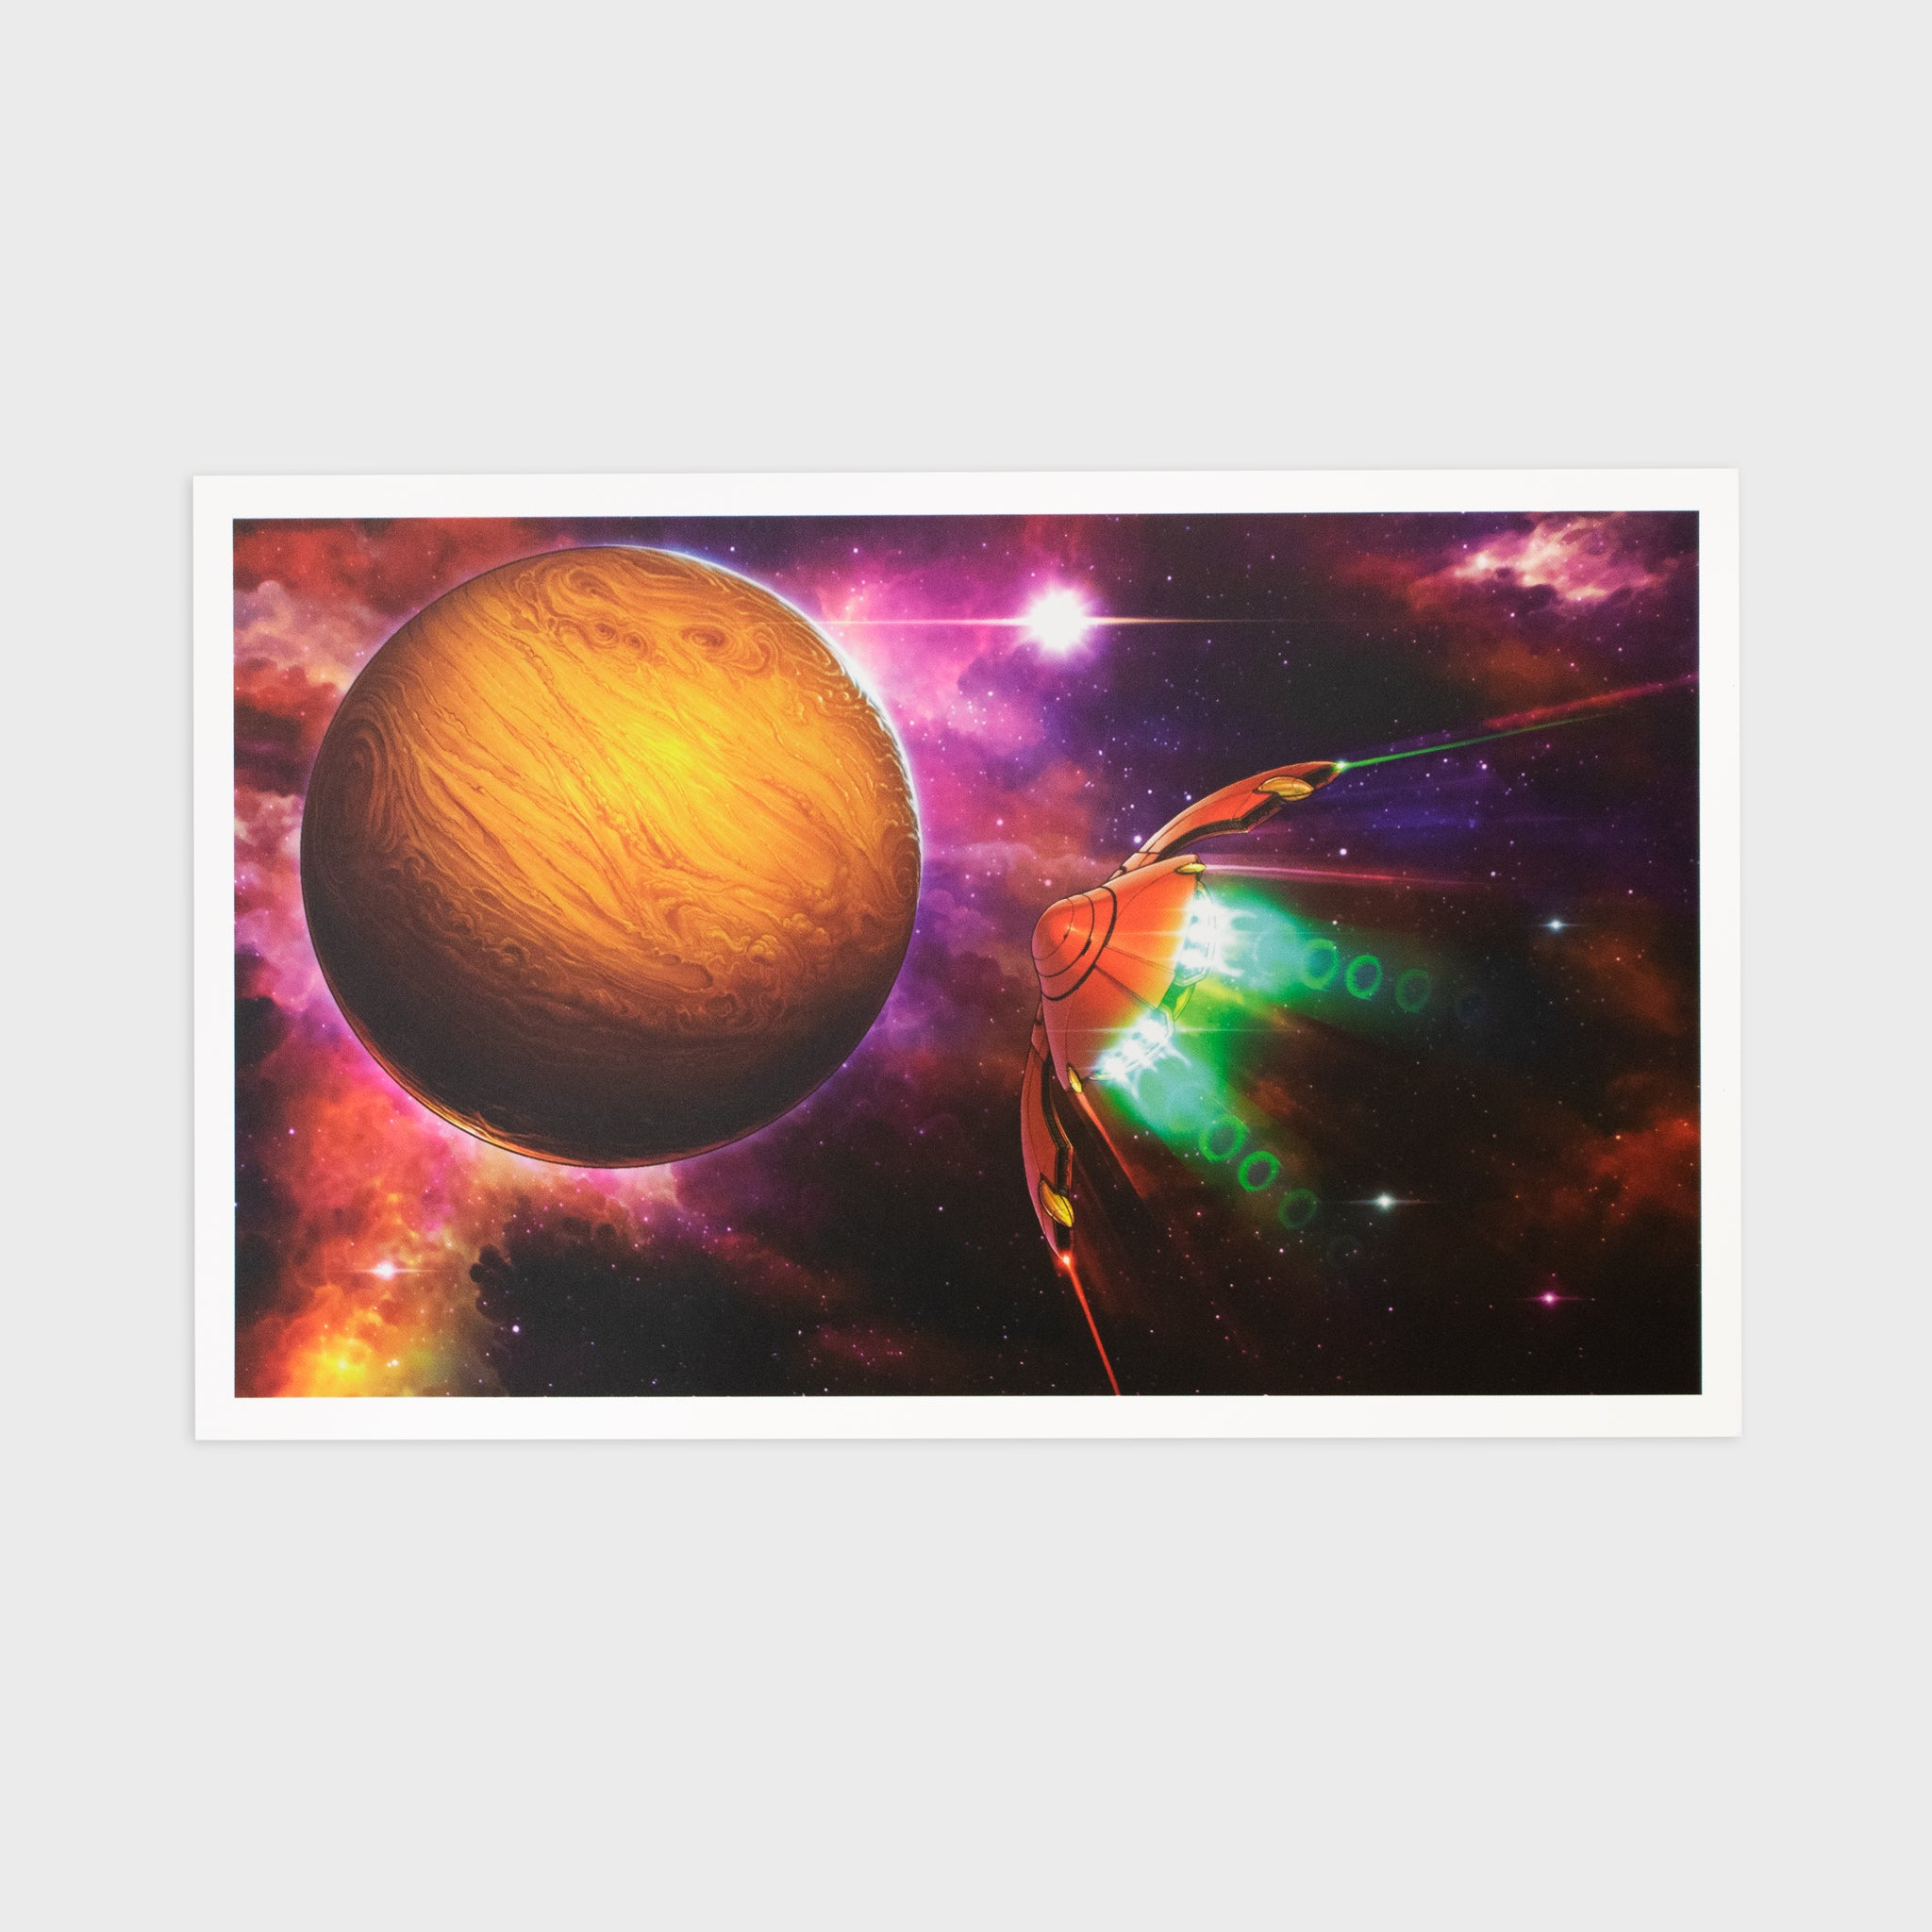 metroid samus aran nintendo video games collectibles exclusive gamestop retail box accessories culturefly art print poster